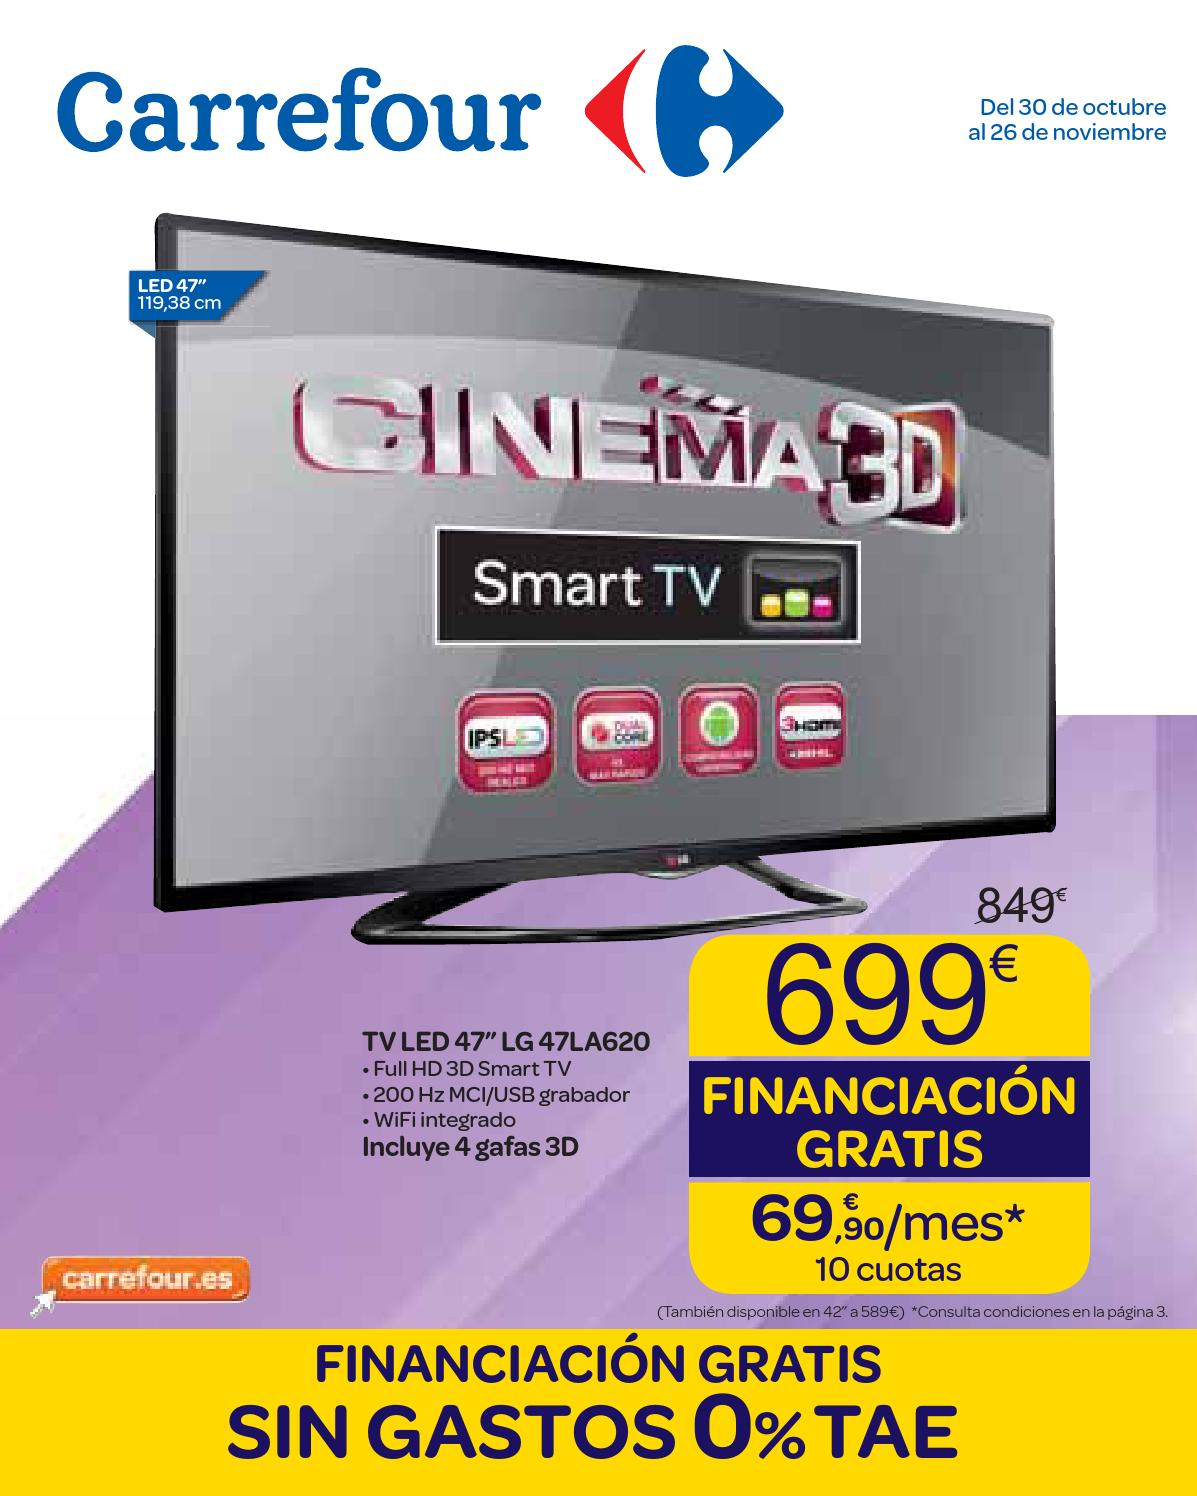 Carrefour Venta De Moviles Libres Catalogo Carrefour Financiacion Gratis 2013 By Carrefour Online